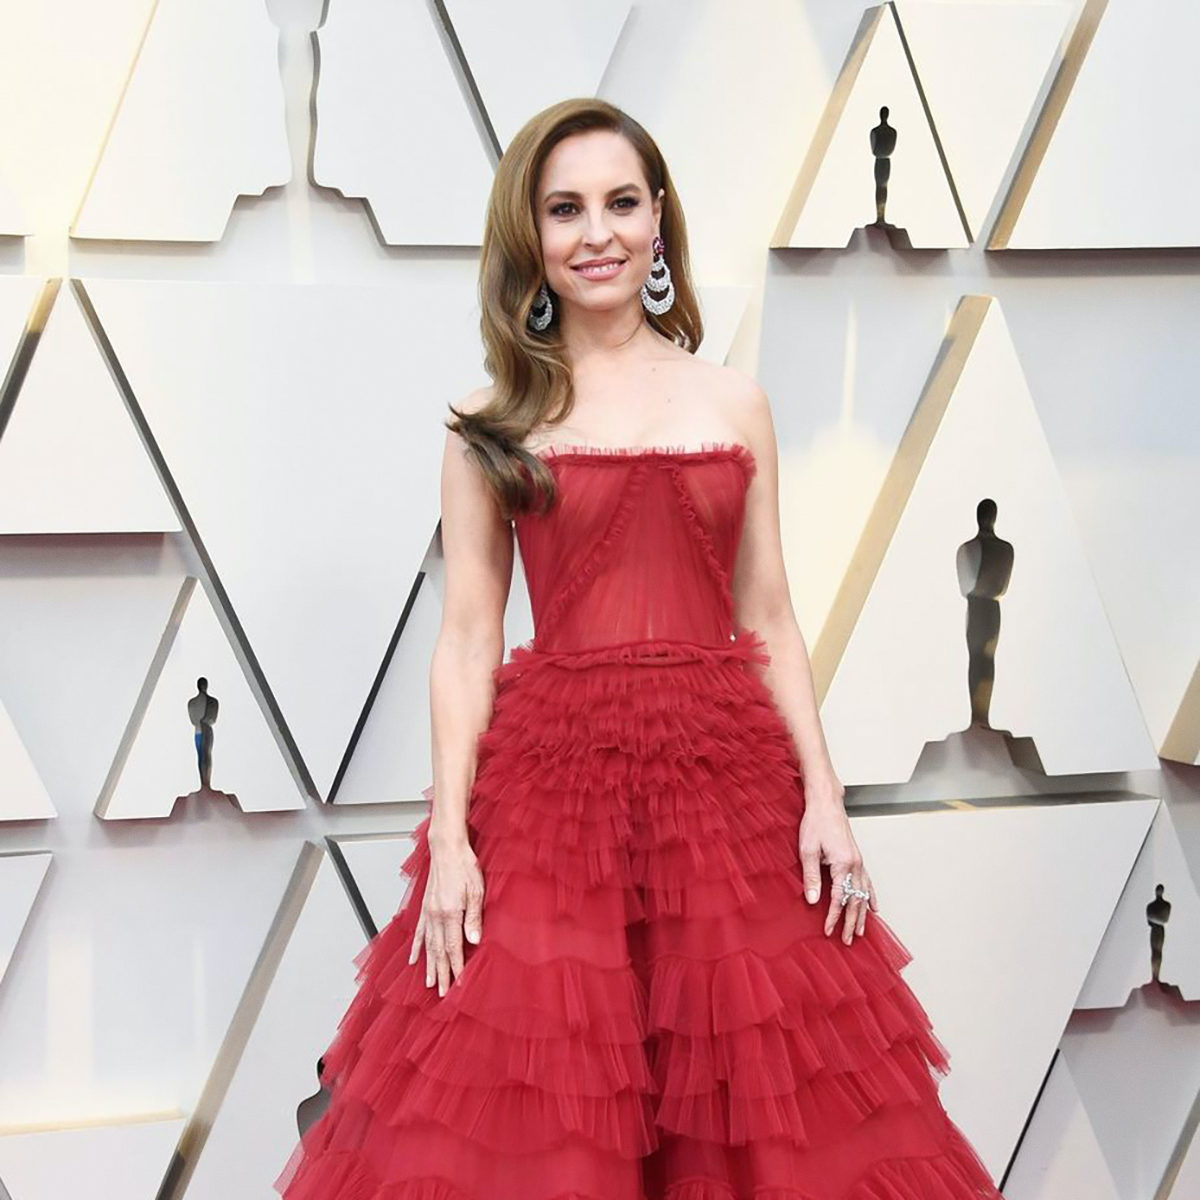 Getty Images Marina de Tavira on the red carpet of the Oscars.